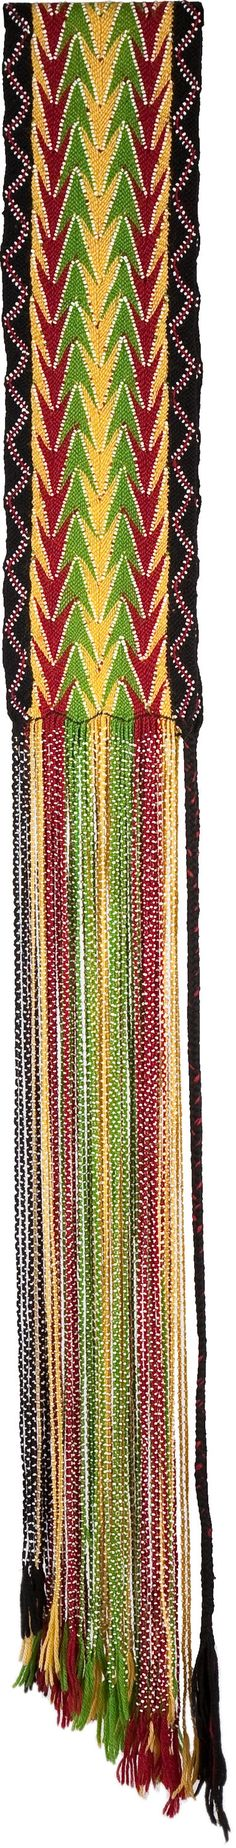 AN OSAGE BEADED WOOL YARN SASH. c. 1900. ... American Indian | Lot #50130 | Heritage Auctions